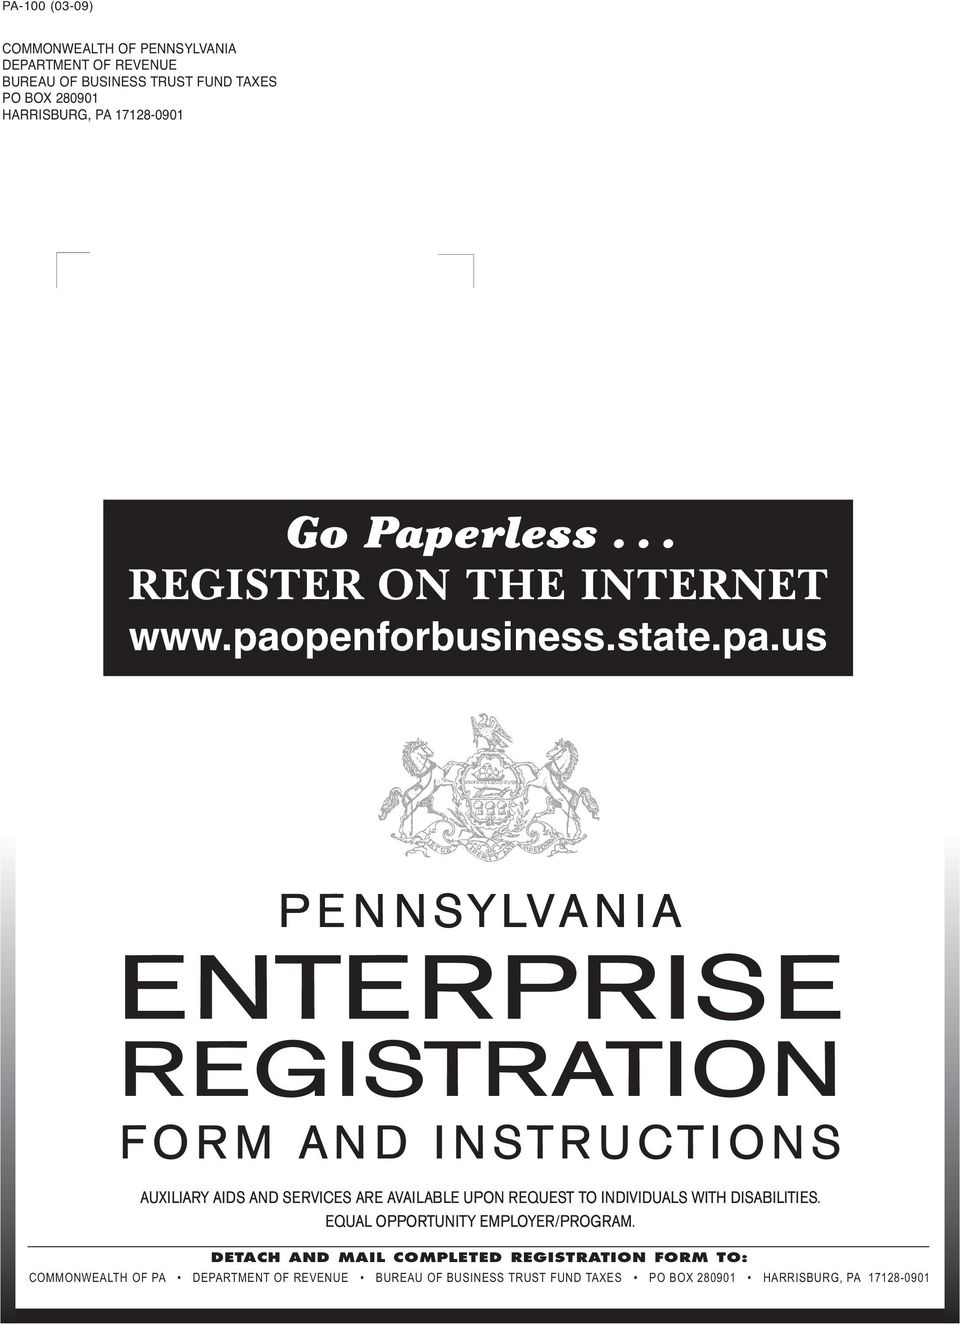 penforbusiness.state.pa.